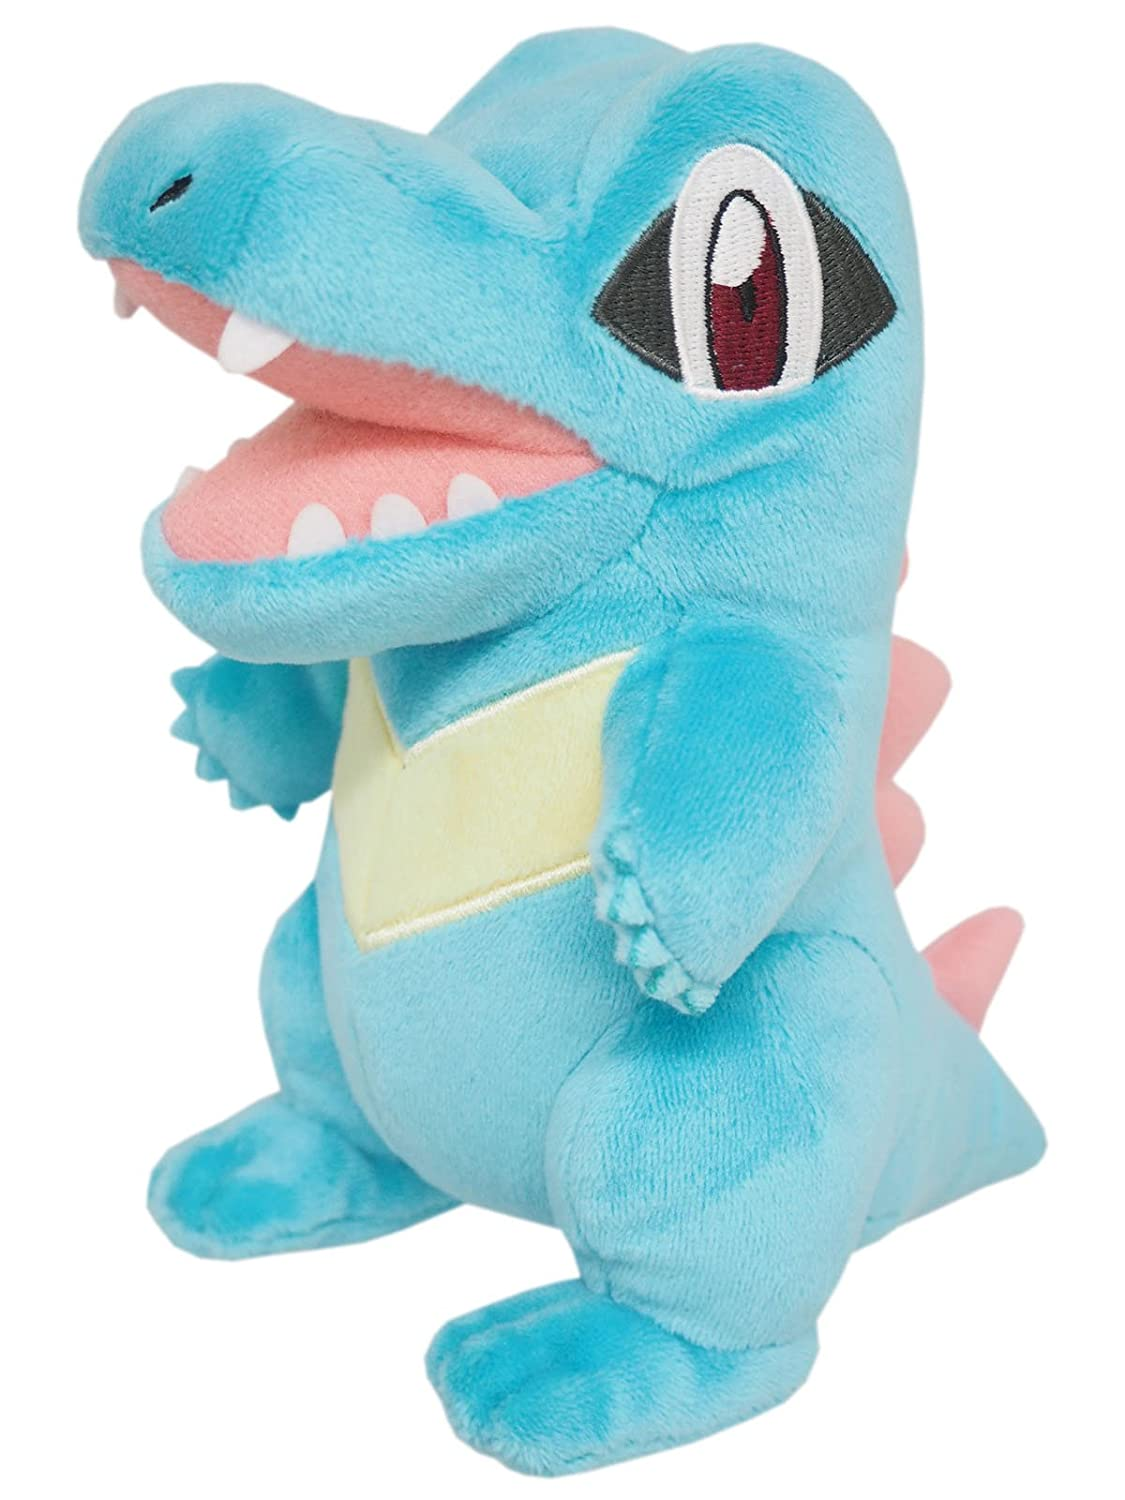 Sanei PP42 Pokemon All Star Collection, Totodile 6 Stuffed Plush JVG INC. - CA